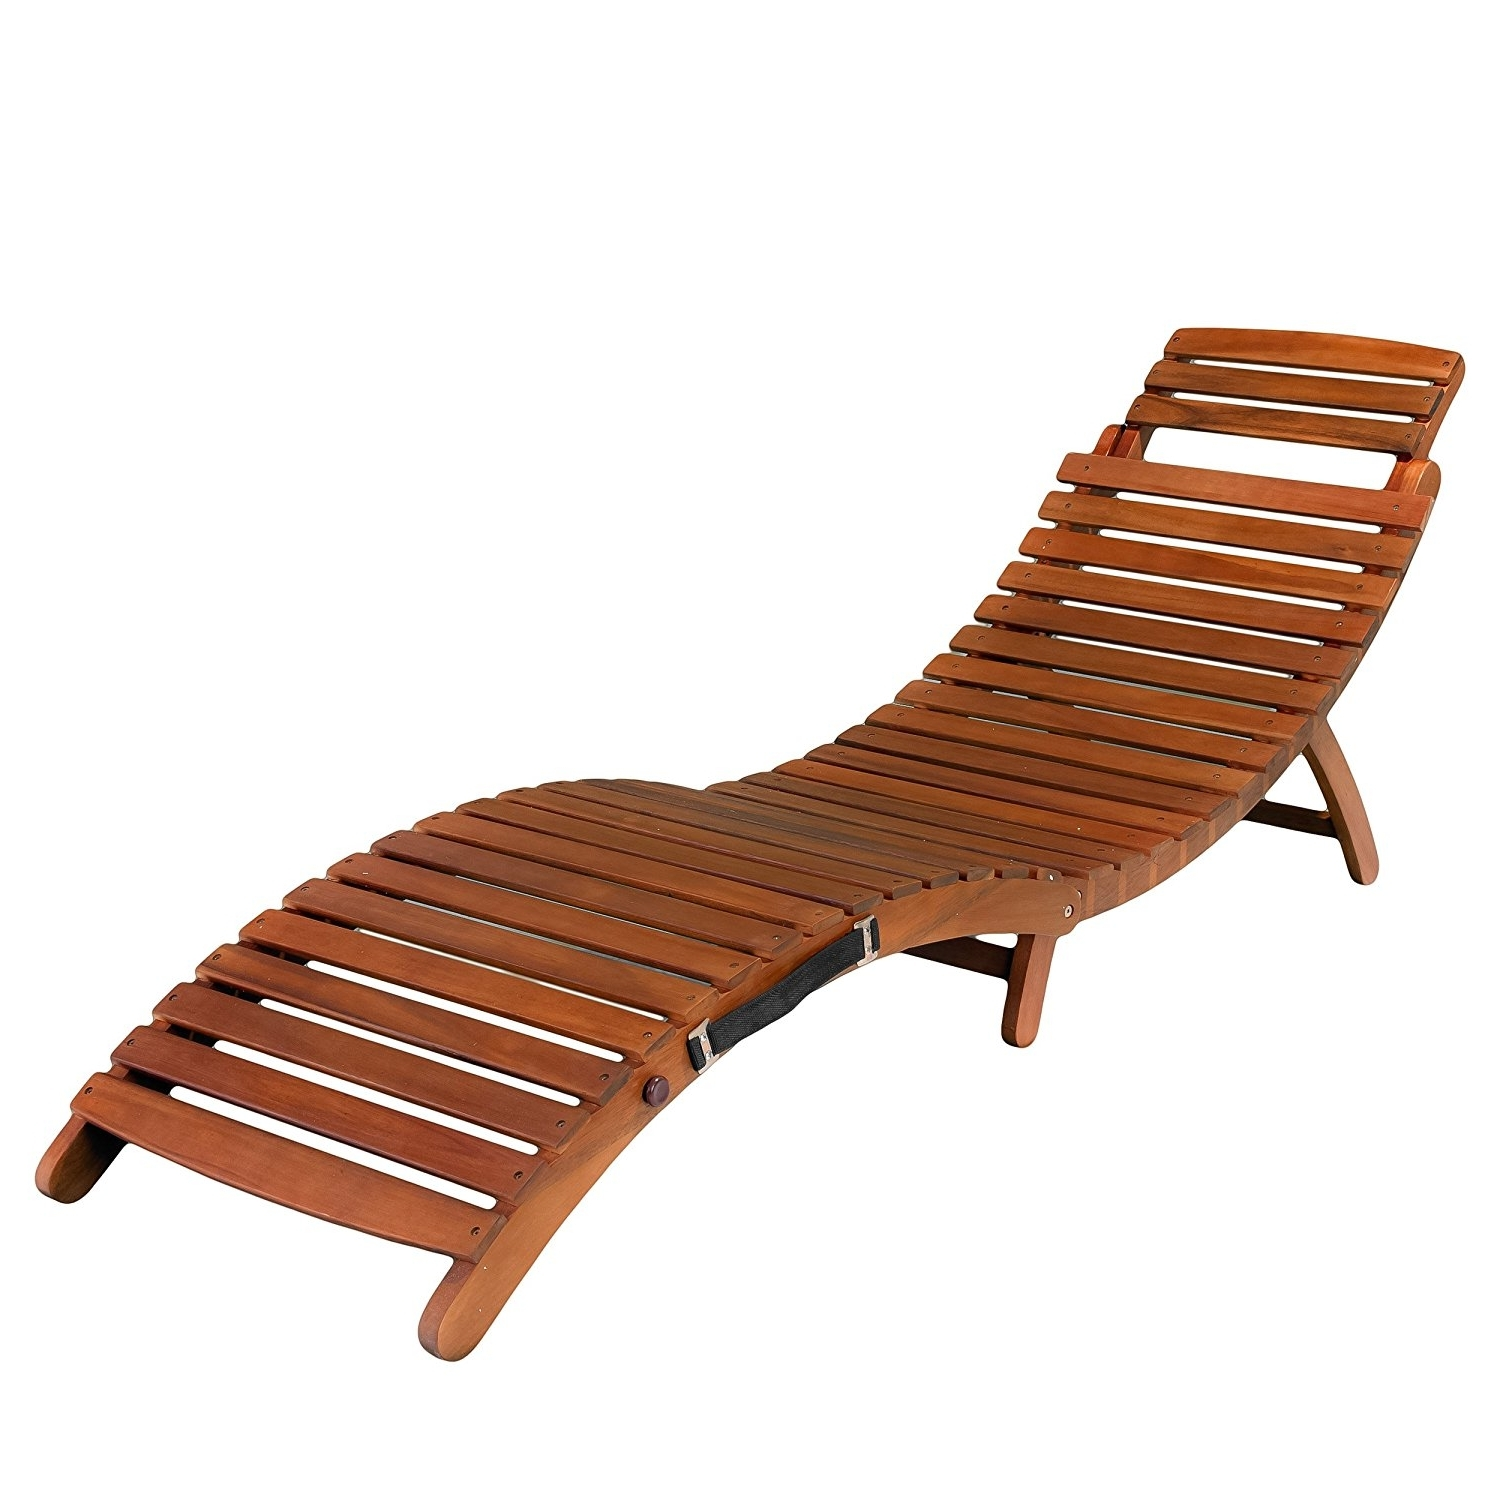 Wood Chaise Lounges Inside Most Recently Released Amazon: Best Selling Del Rio Wood Outdoor Chaise Lounge (View 11 of 15)